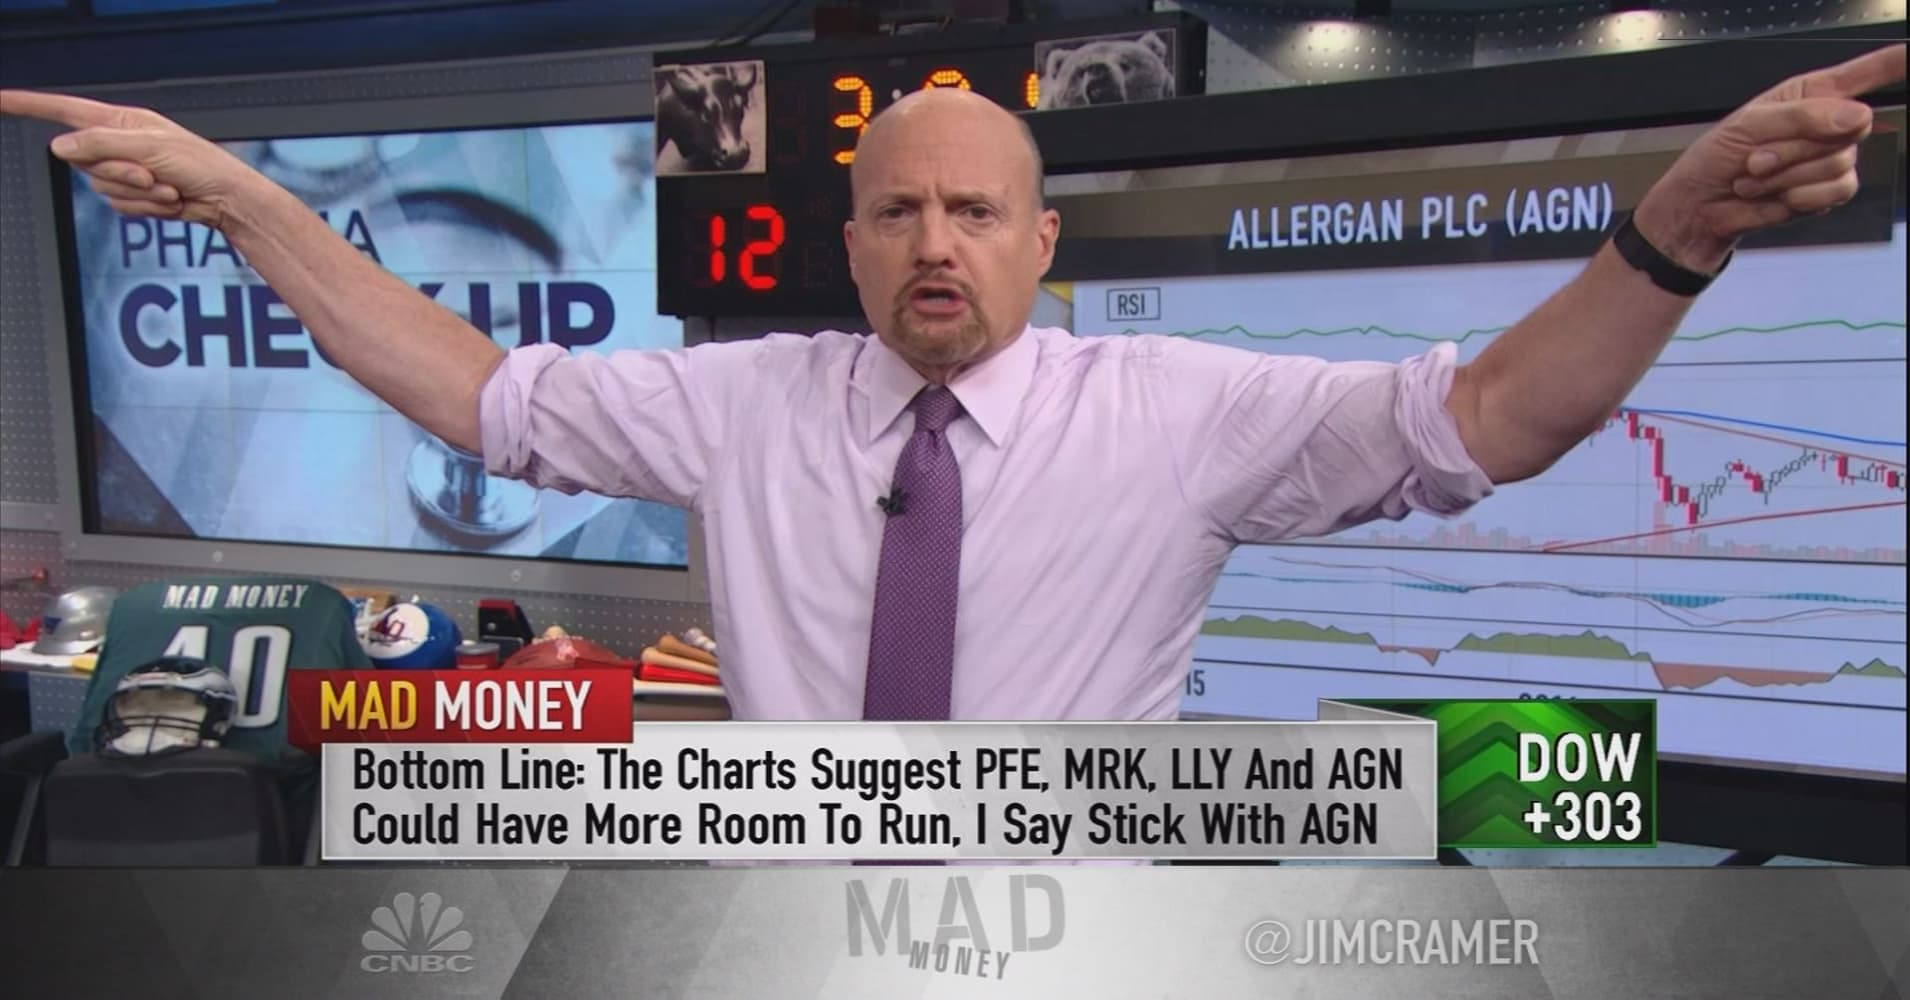 Cramer's charts uncover 4 pharma stocks ready to explode higher